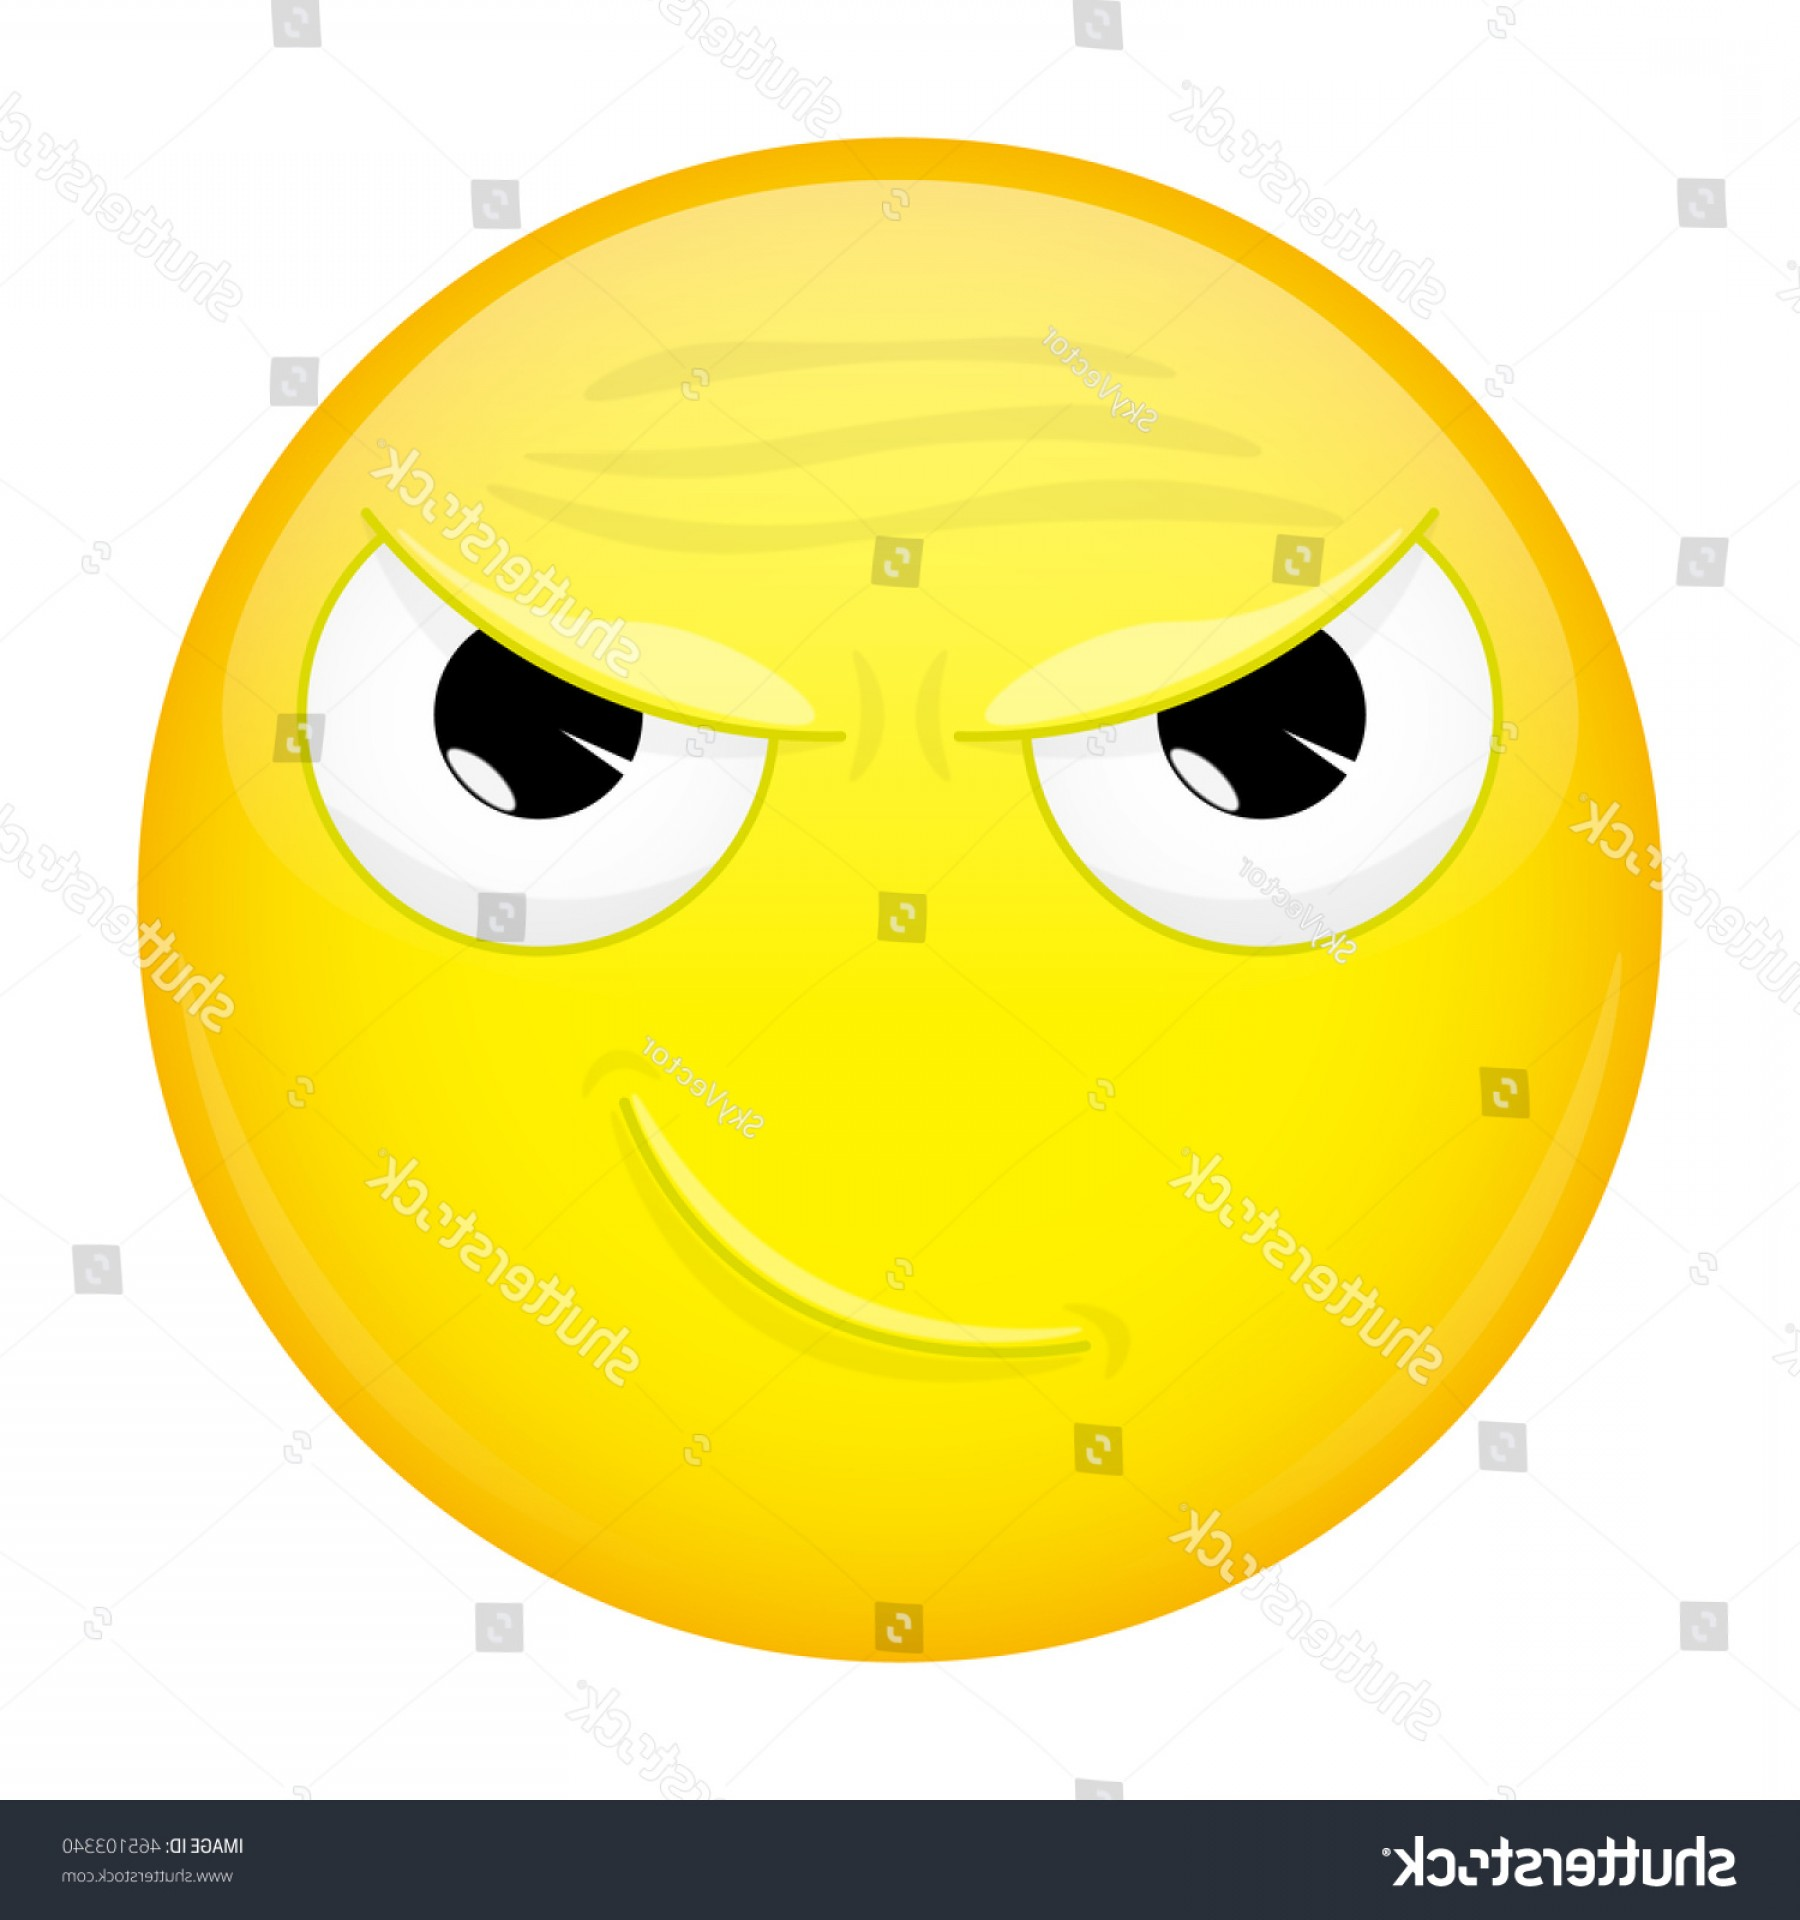 Rainbow Face Emoji Vector: Smirk Emoji Sly Emotion Smiling Emoticon